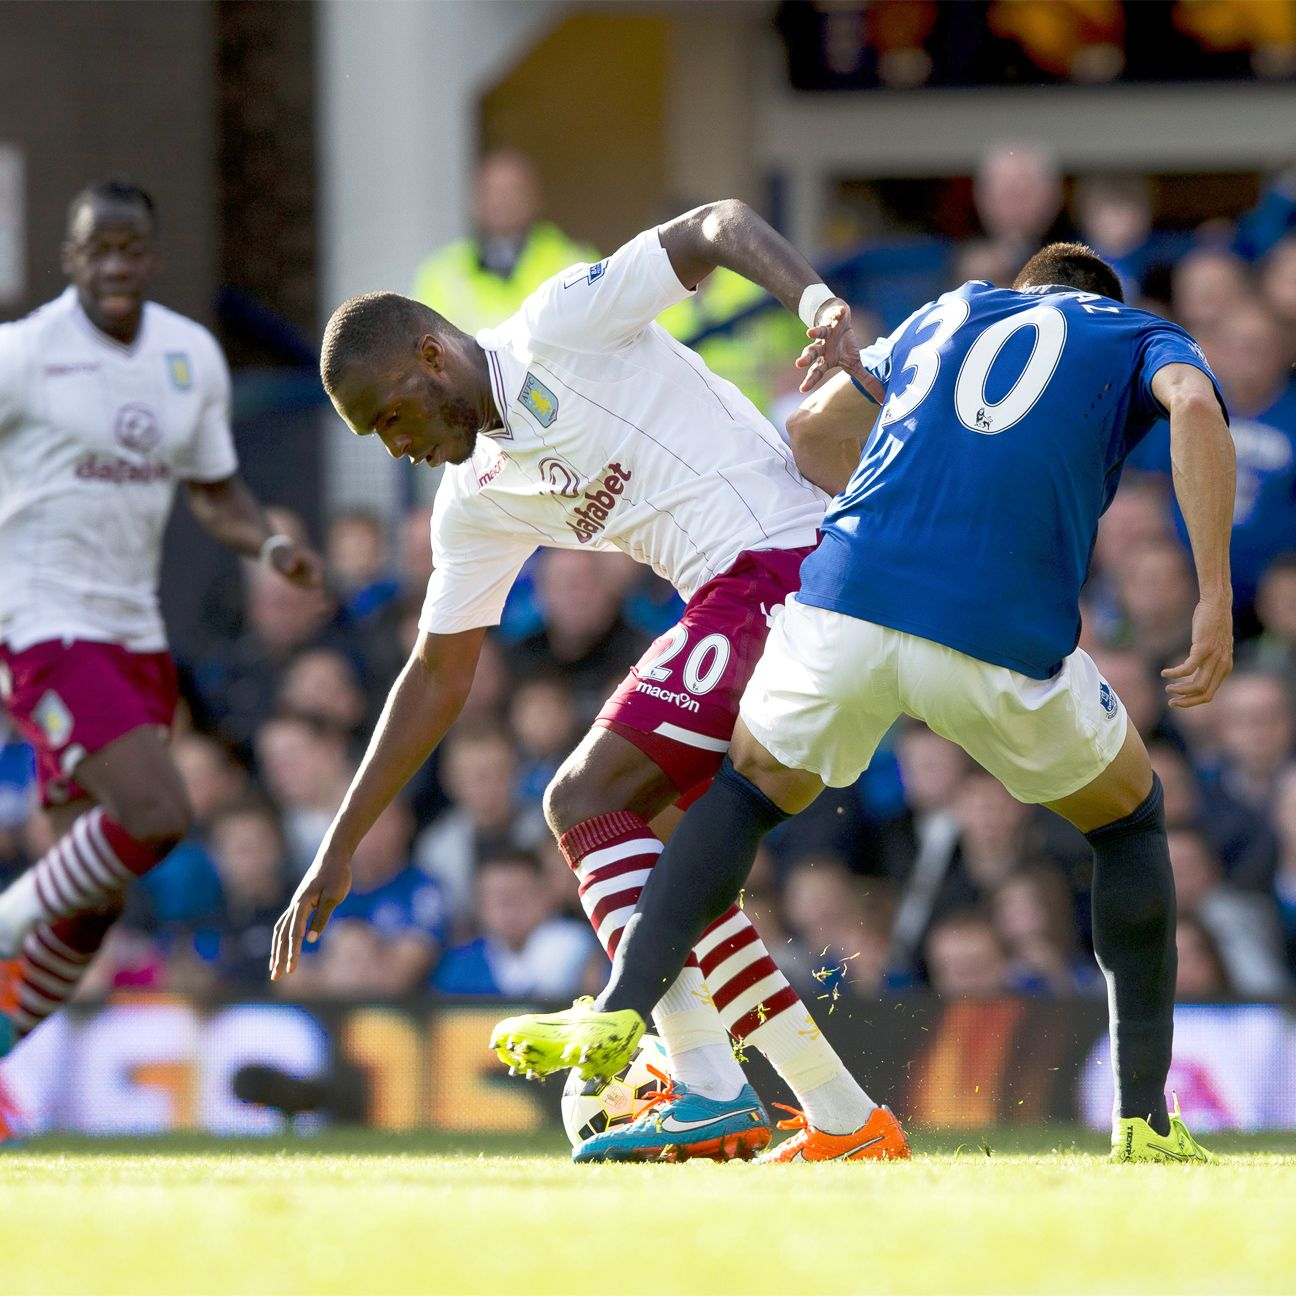 Christian Benteke's return to action is a timely one for goal-starved Aston Villa.